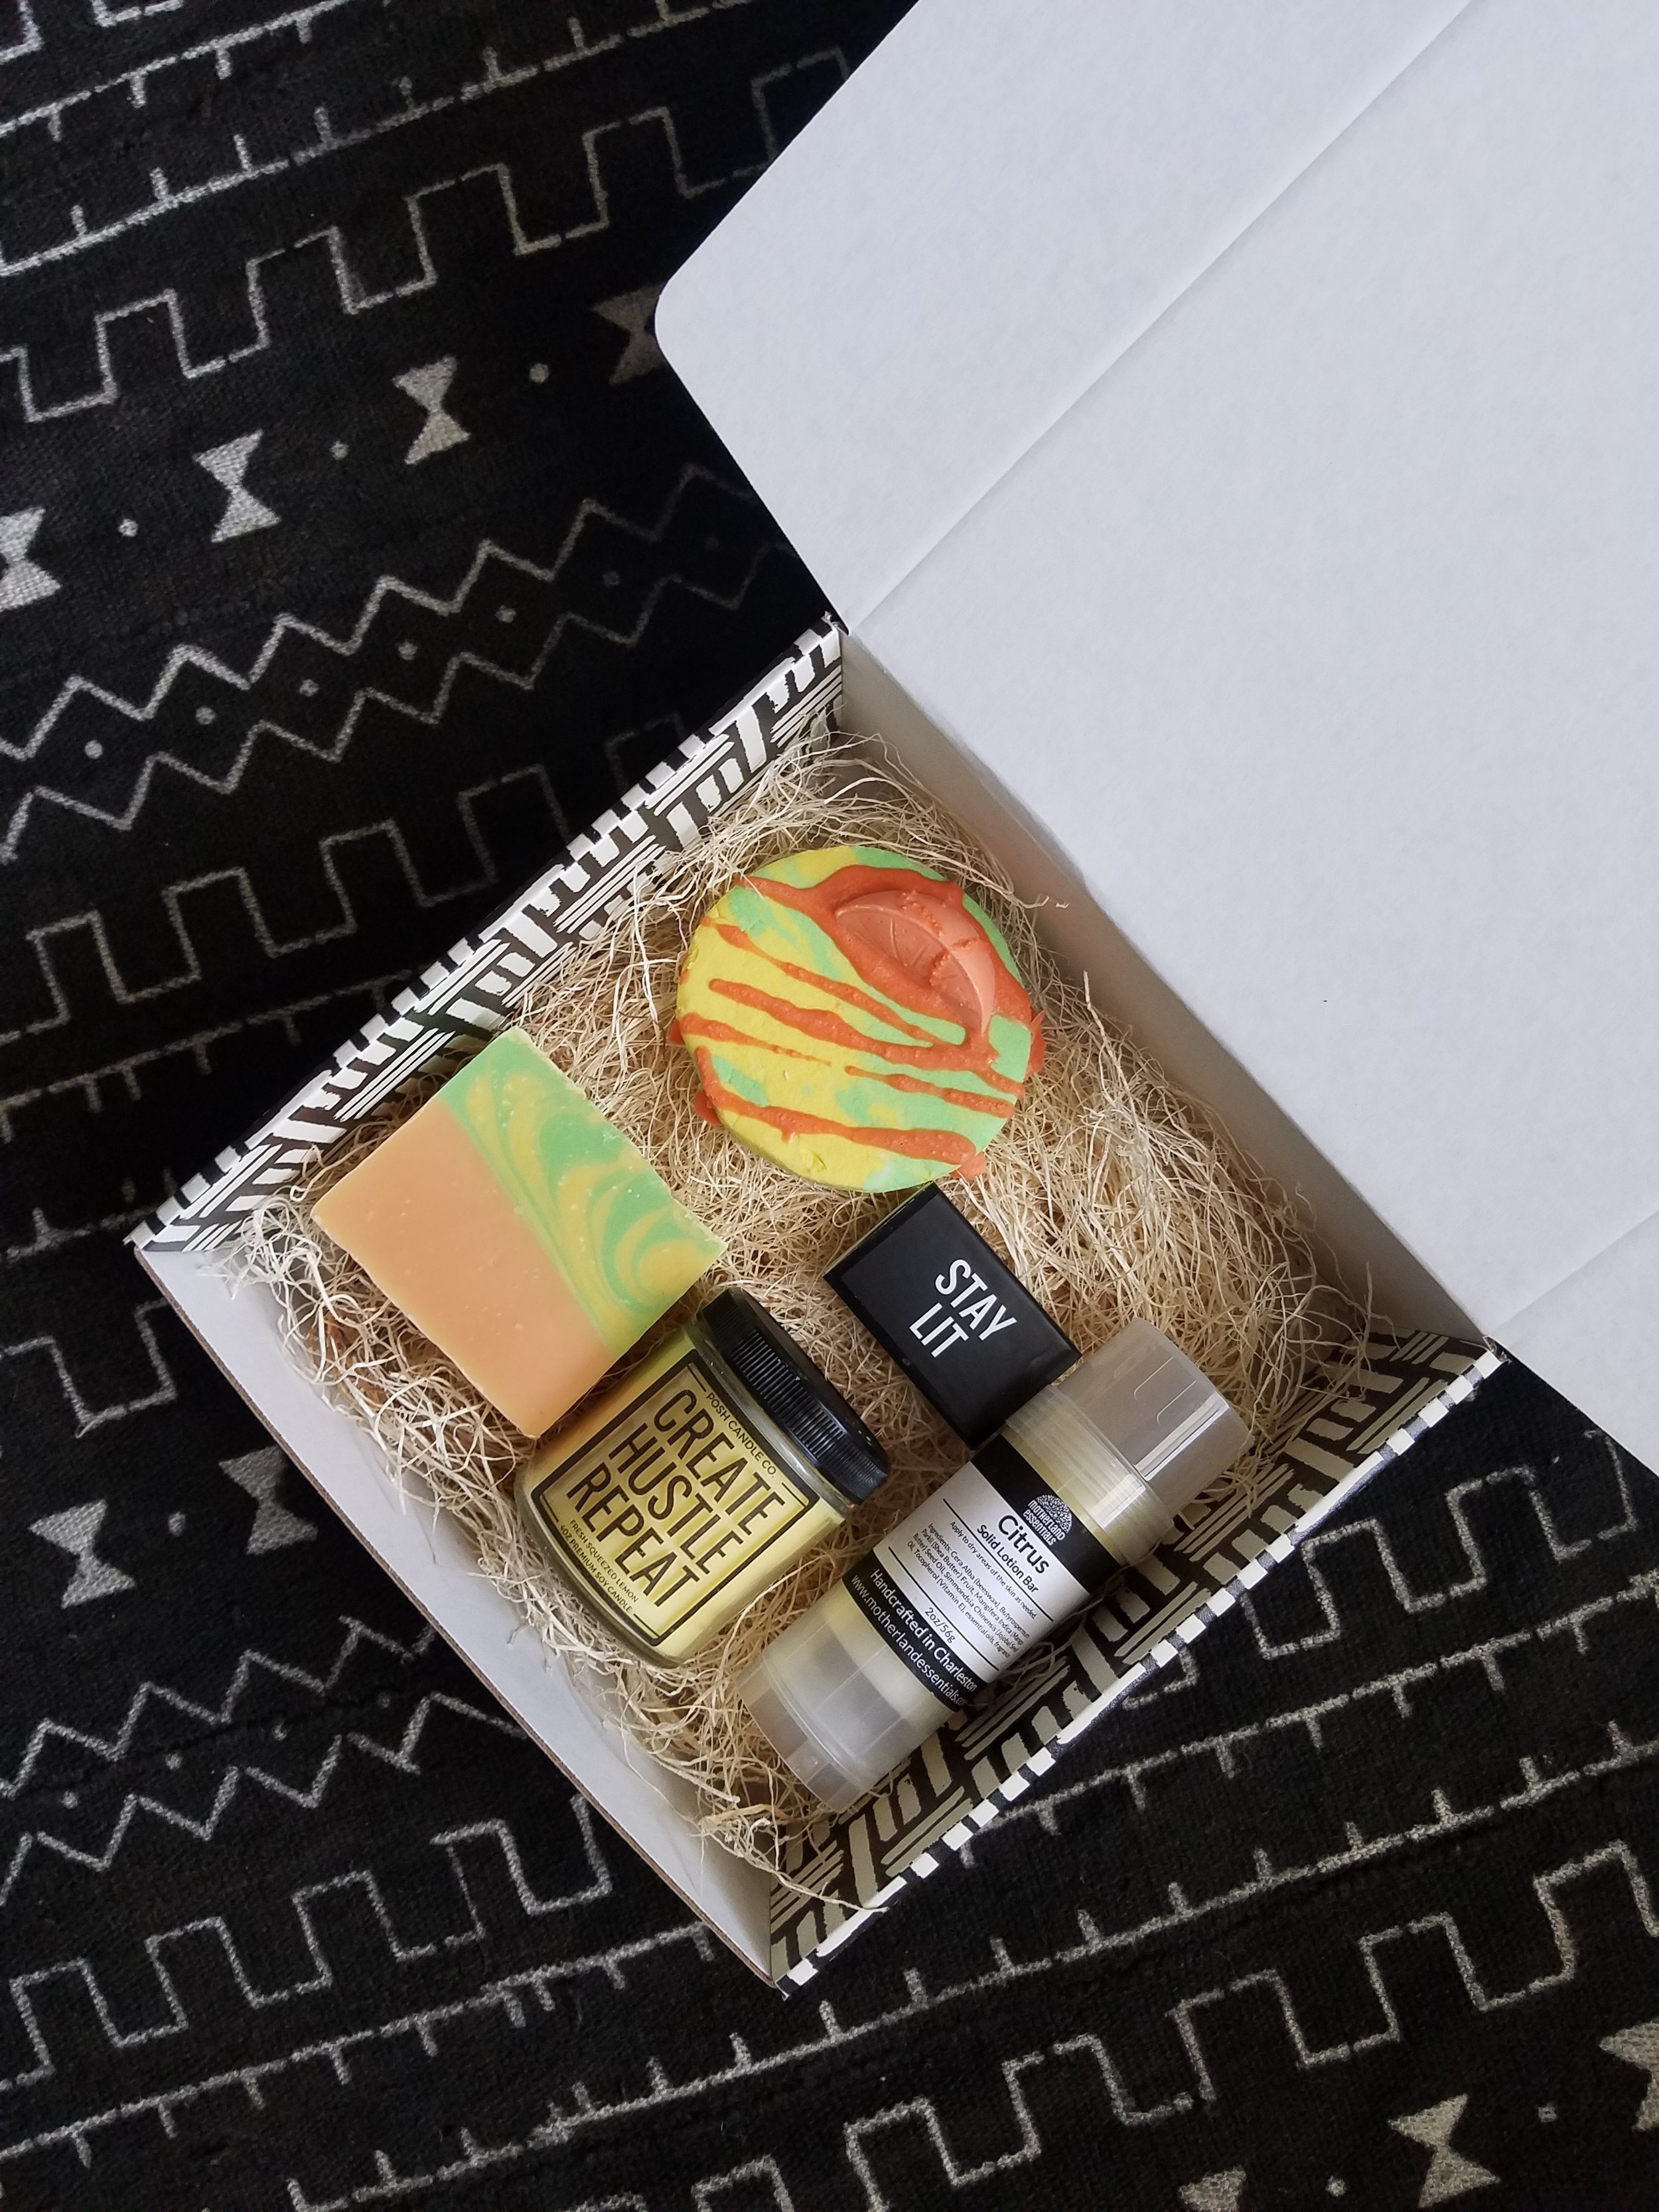 Our Essential Self-care Box filled with goodies.